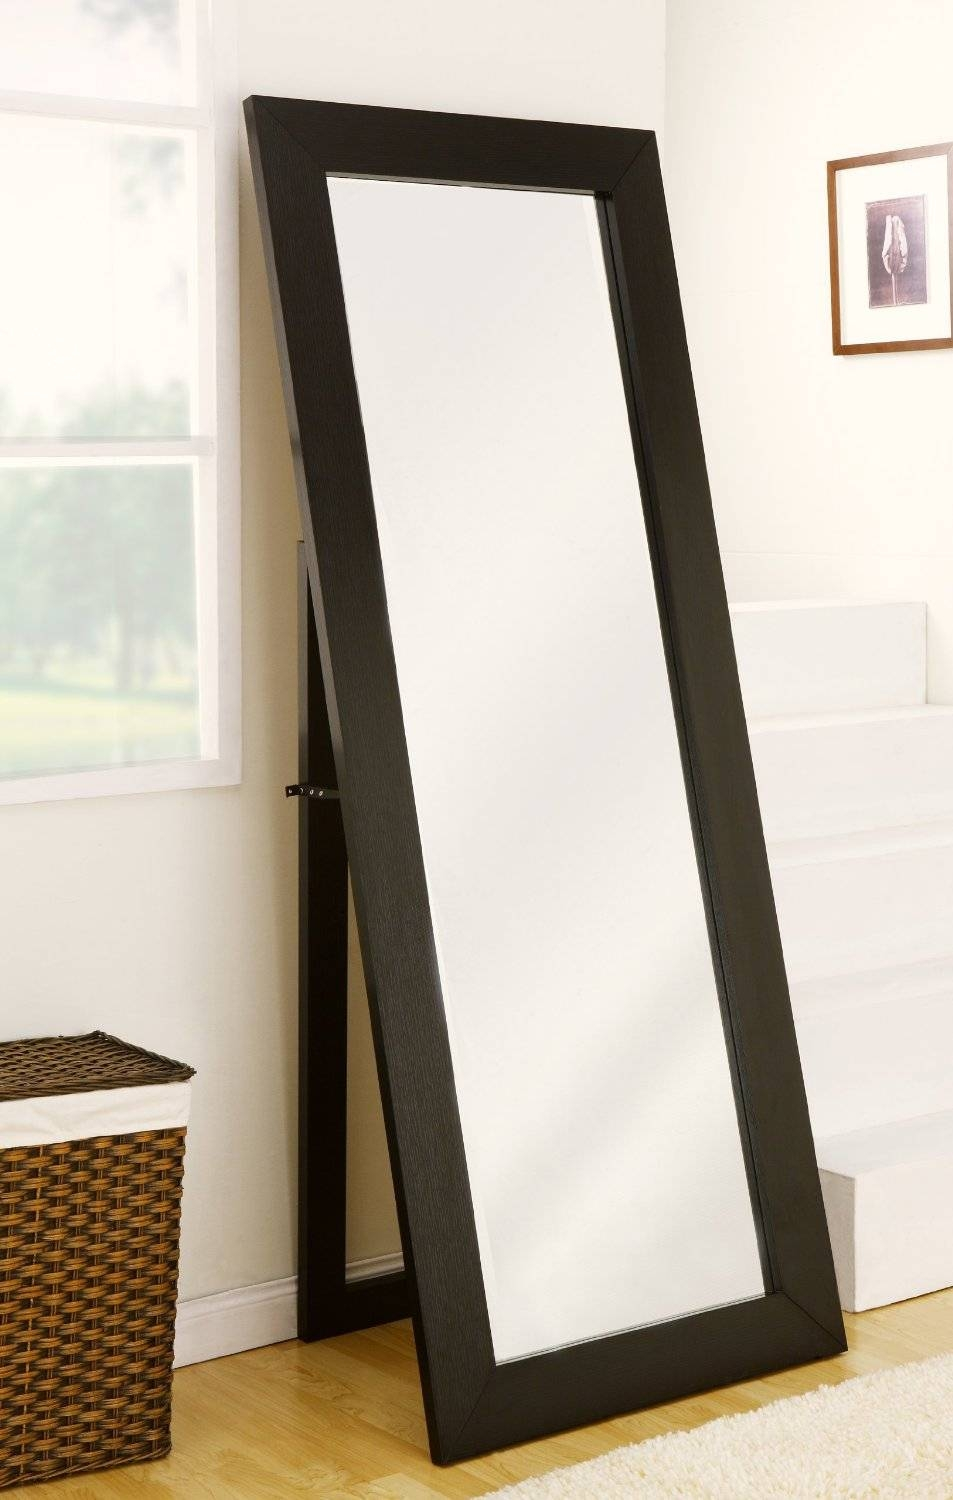 Free Standing Mirror Full Length 2 Fascinating Ideas On Mirror A Pertaining To Long Free Standing Mirrors (View 10 of 25)